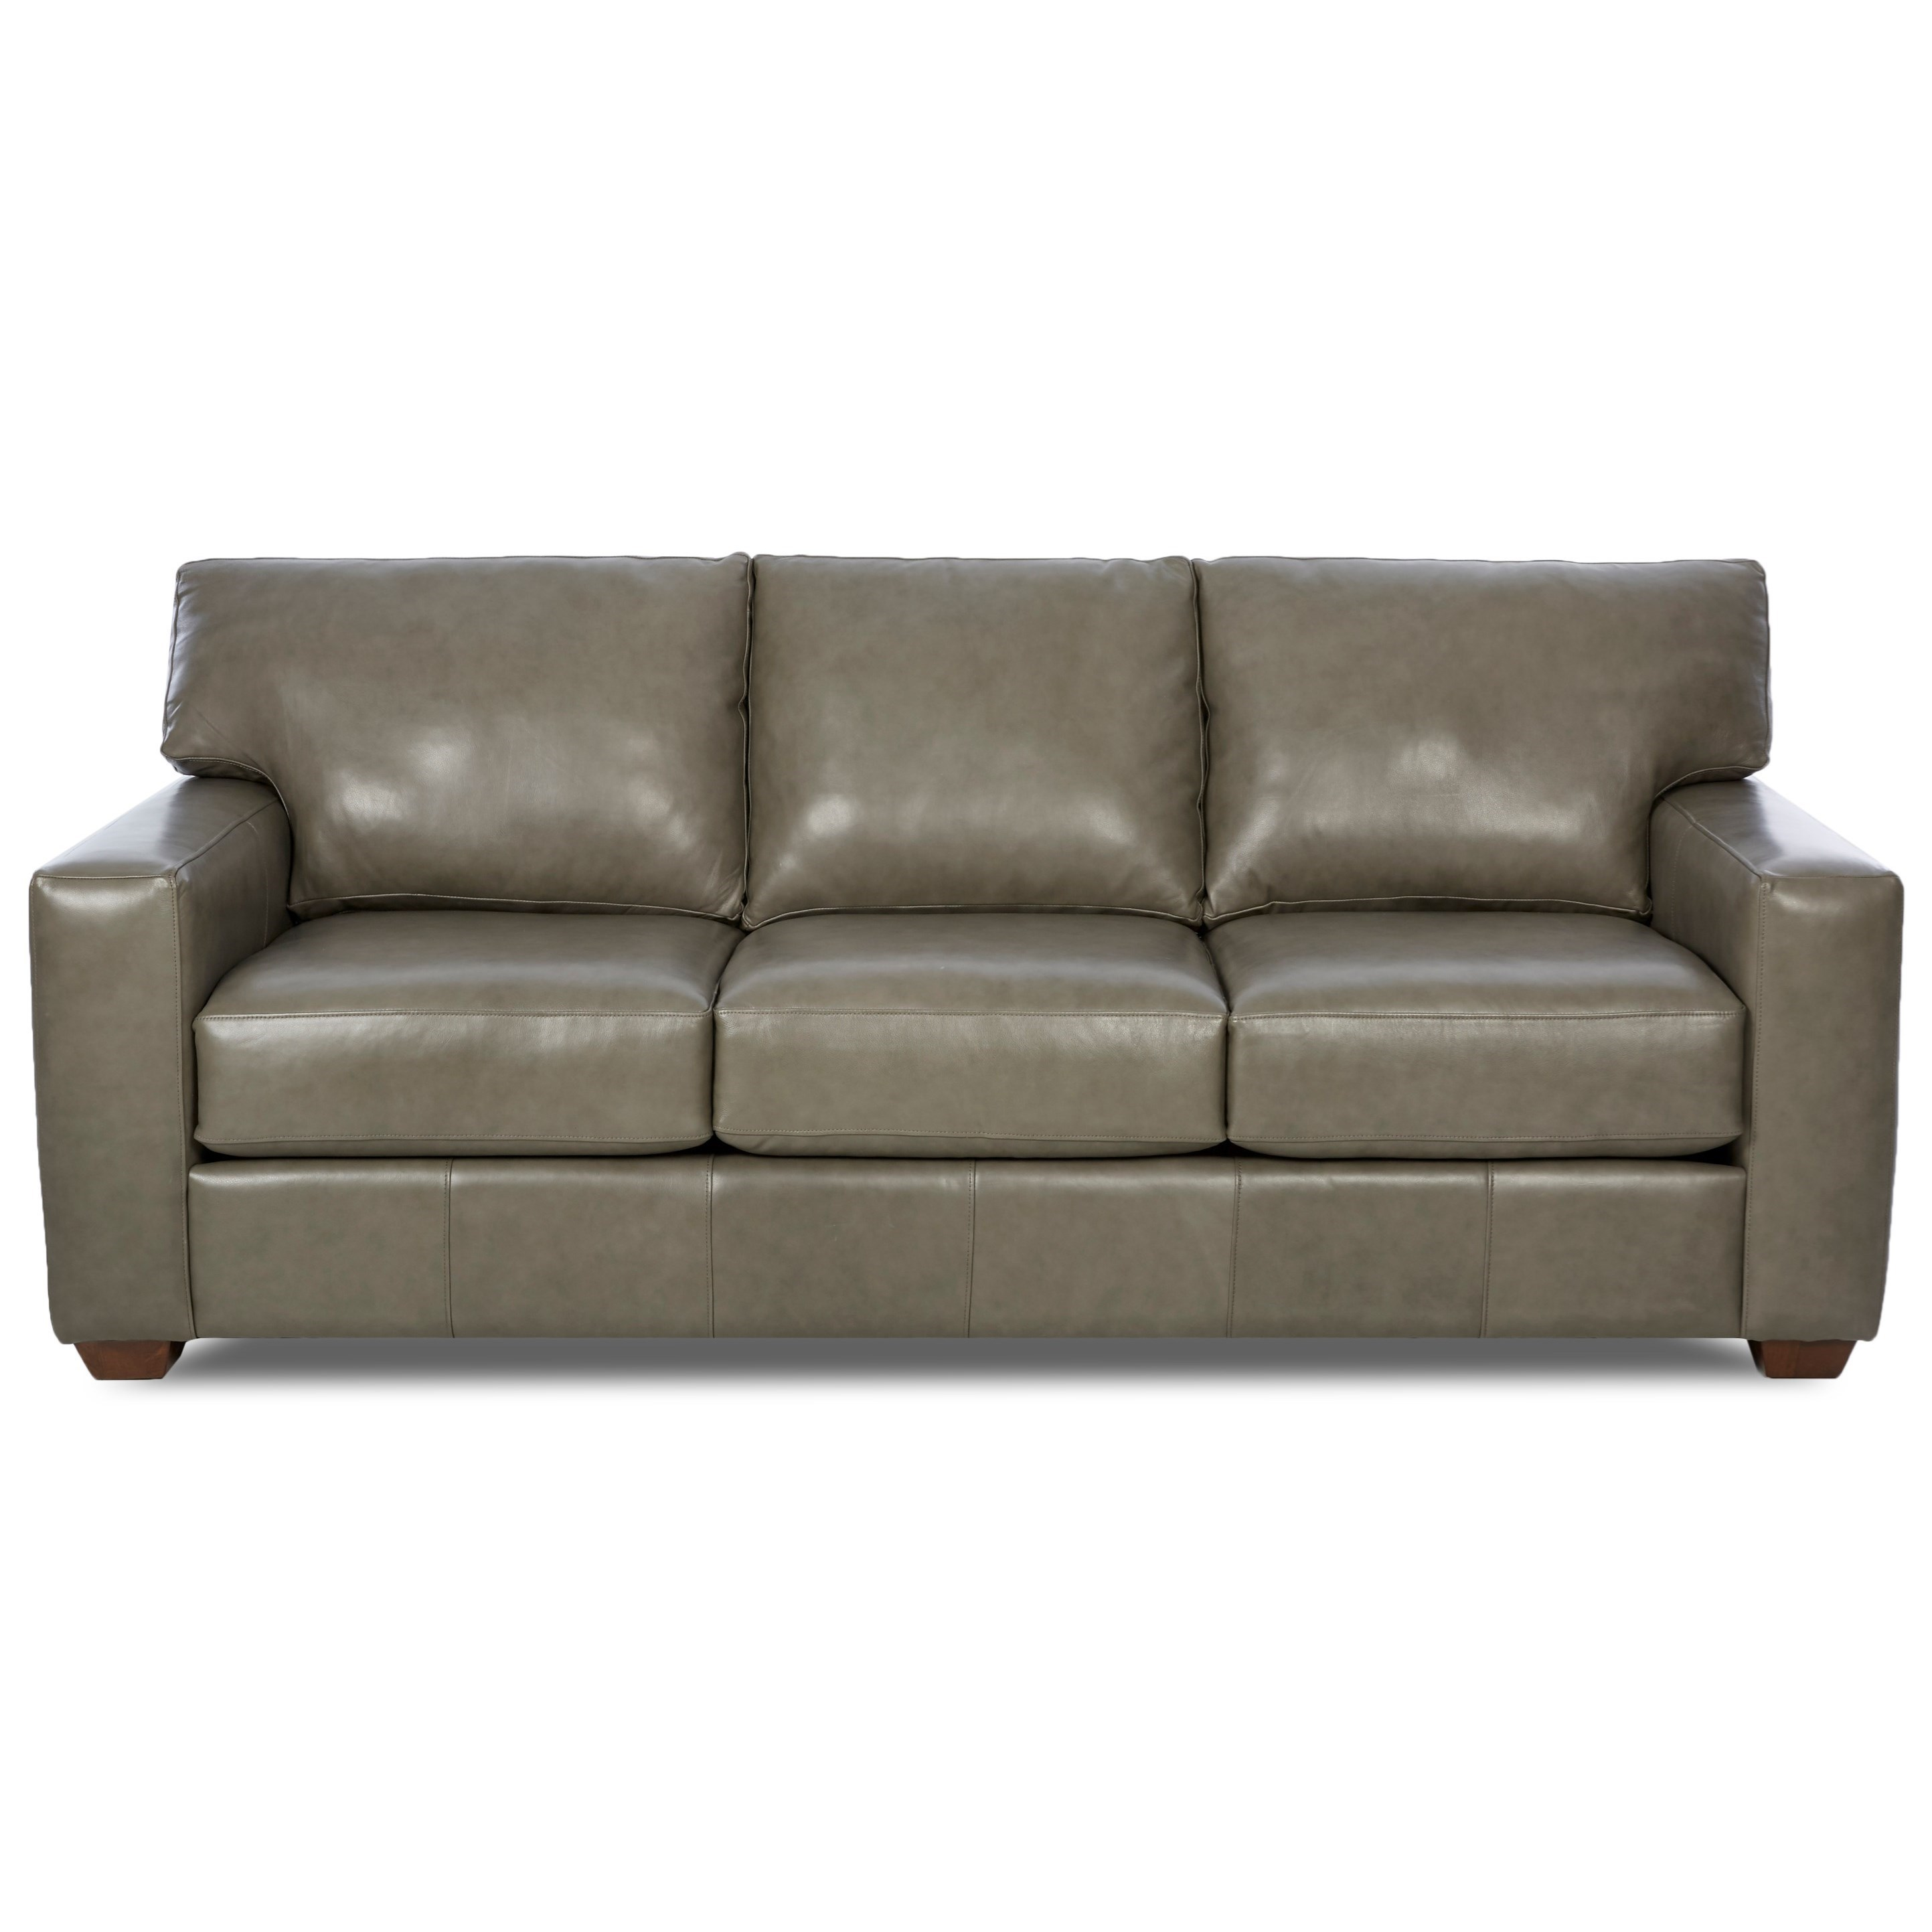 Klaussner Leather Sofa Review: Klaussner Southport Contemporary Leather Sofa